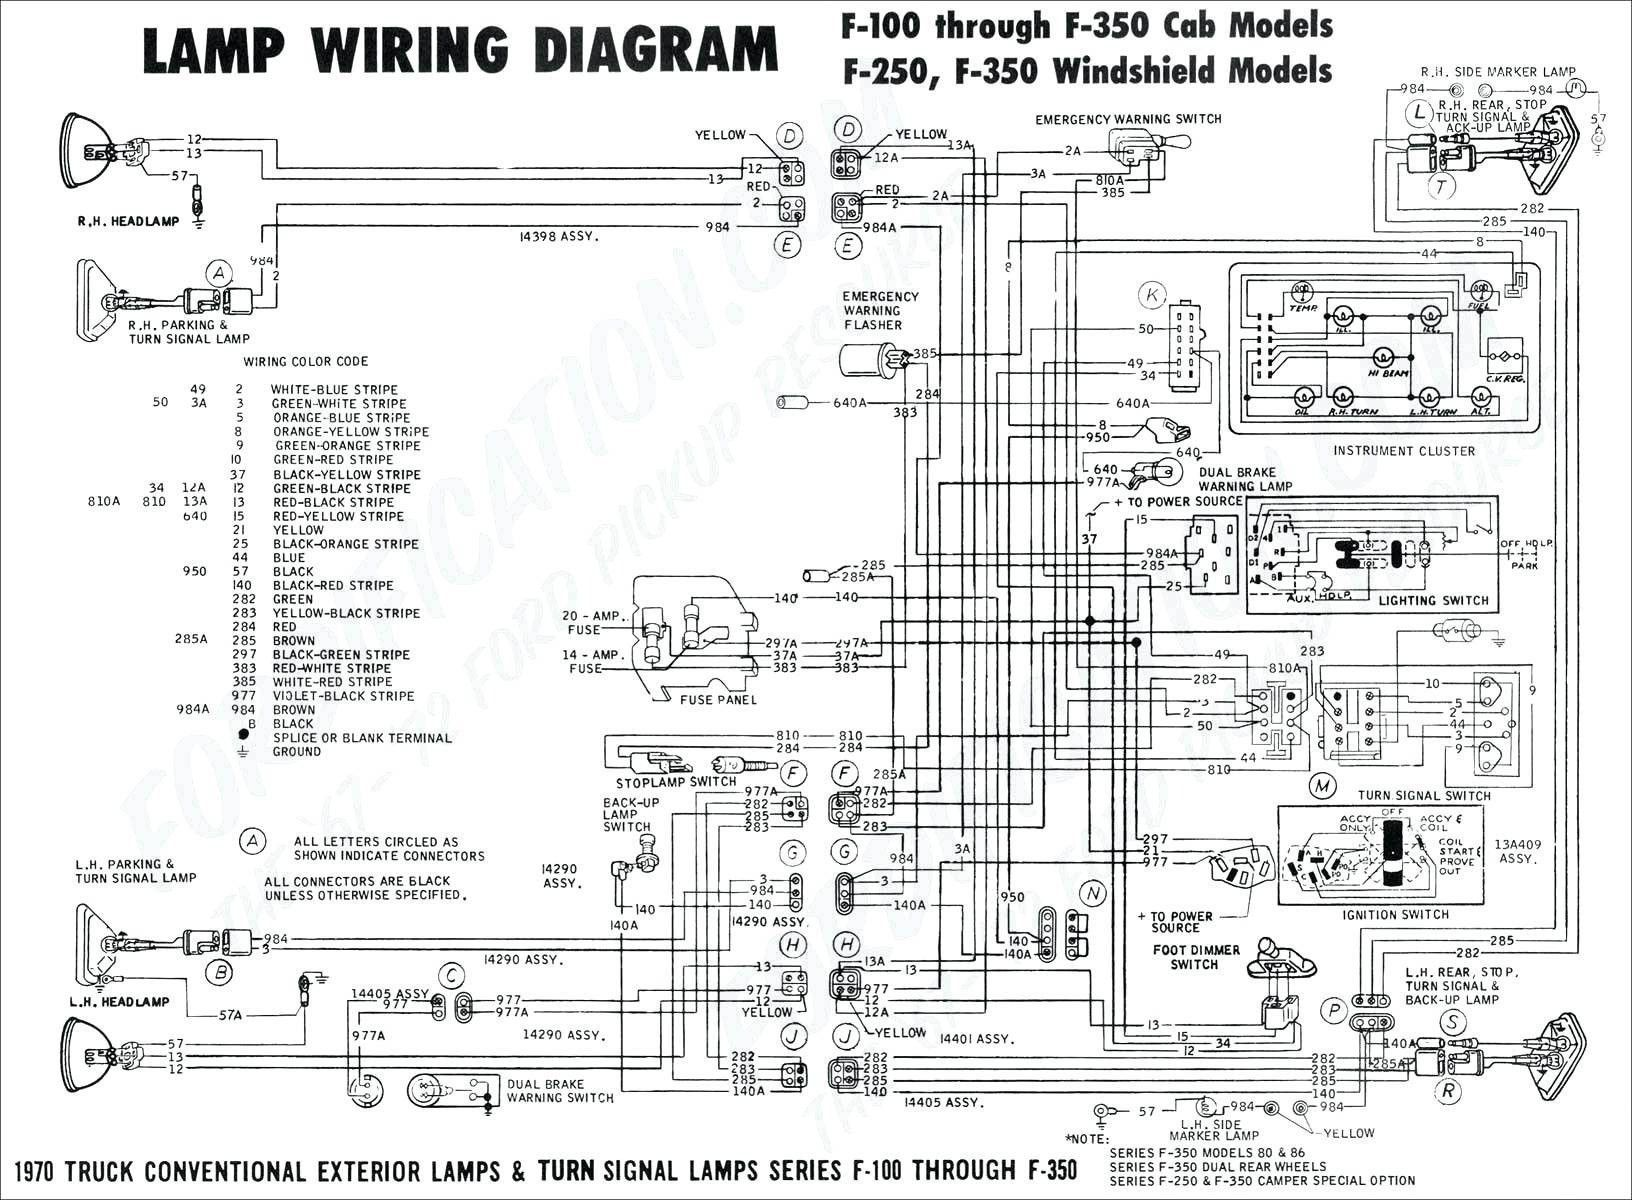 Elegant Autometer Gauges Wiring Diagram In 2020 Trailer Wiring Diagram Electrical Wiring Diagram Diagram